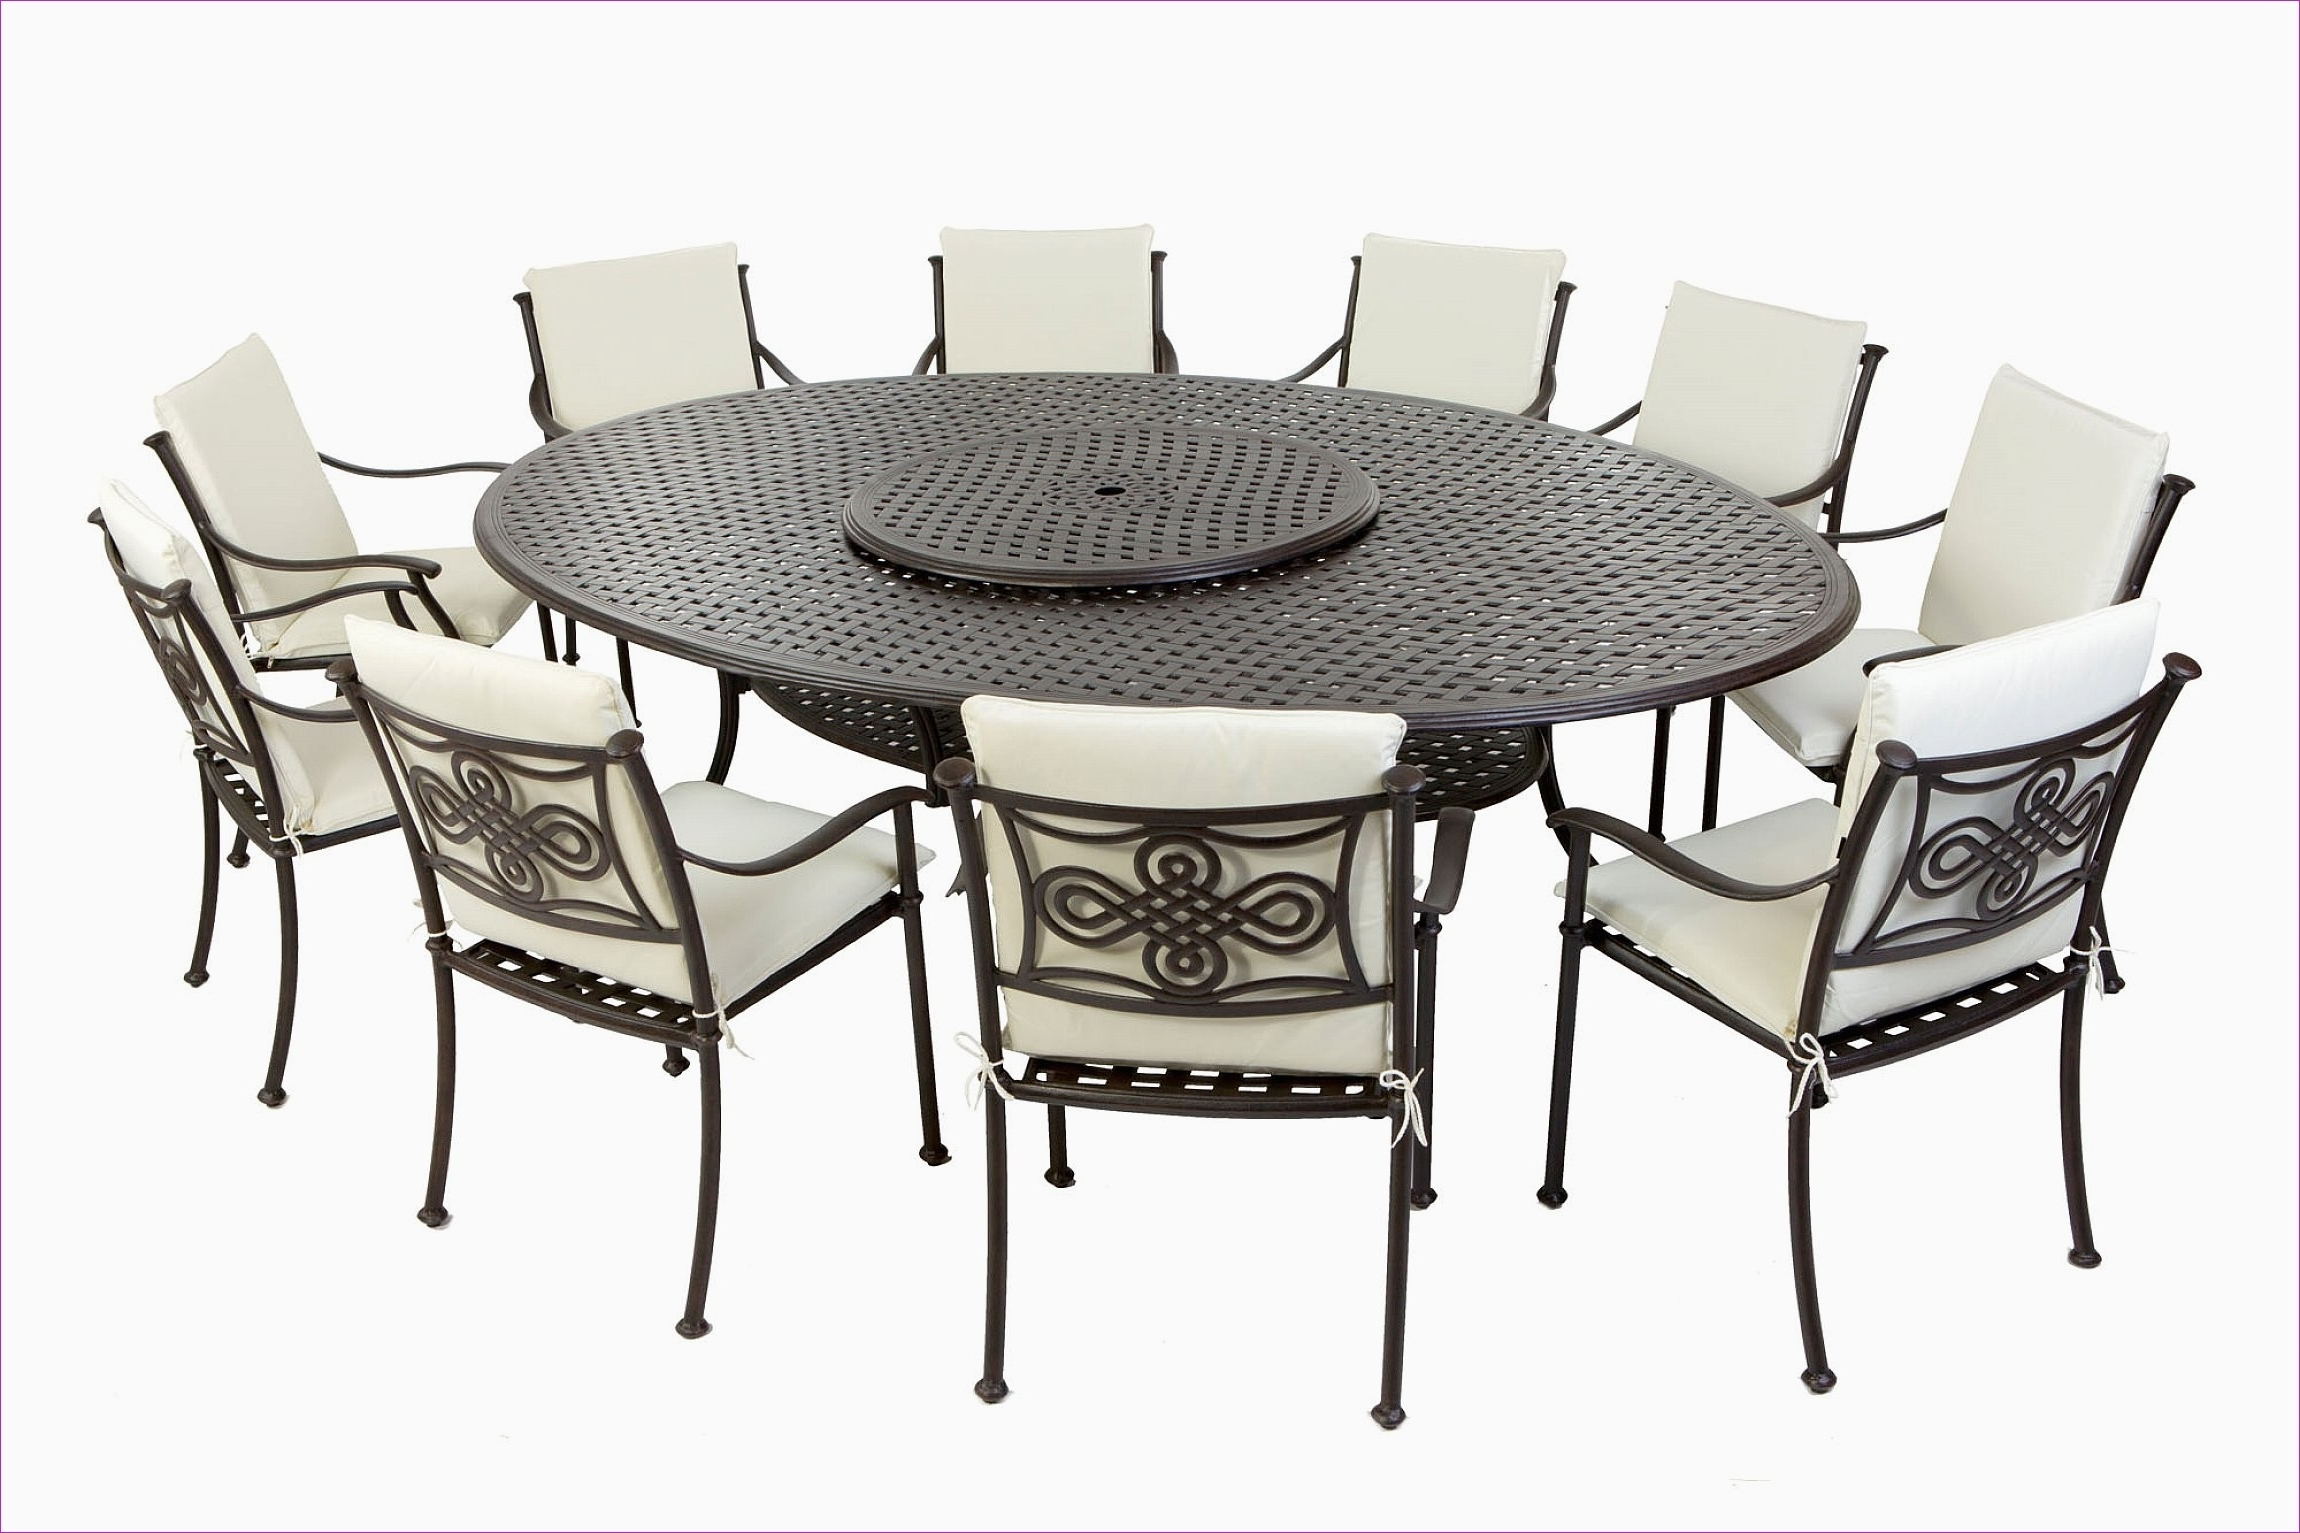 Fashionable Conversation Sets Patio Furniture Clearance Fresh Endearing Sears In Sears Patio Furniture Conversation Sets (View 15 of 15)